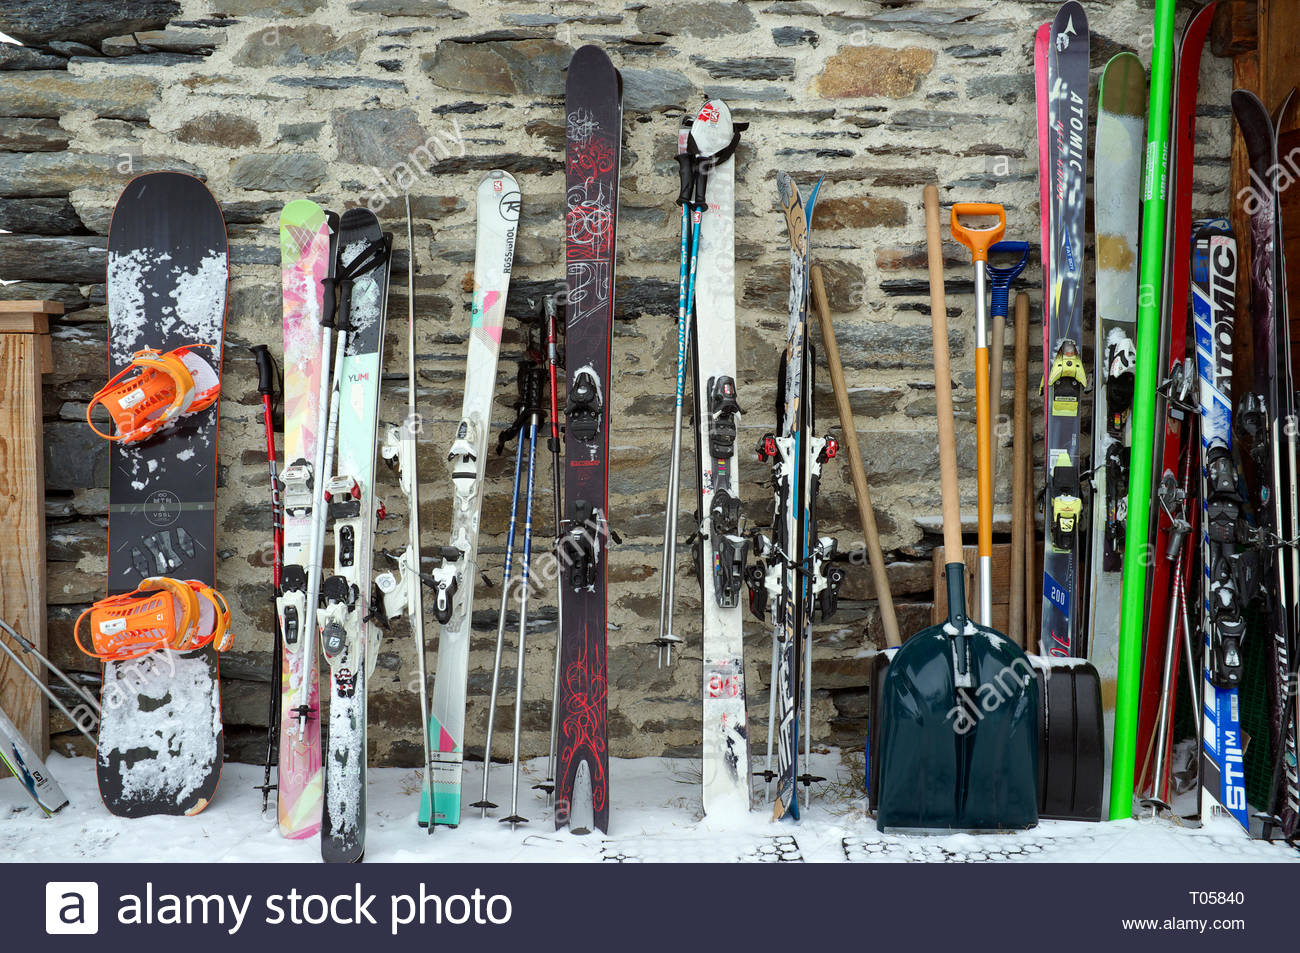 A snowboard and sets of skis, outside a restaurant at the ski resort in Sainte-Foy-Tarentaise, Auvergne-Rhône-Alpes region in south-eastern France. Stock Photo